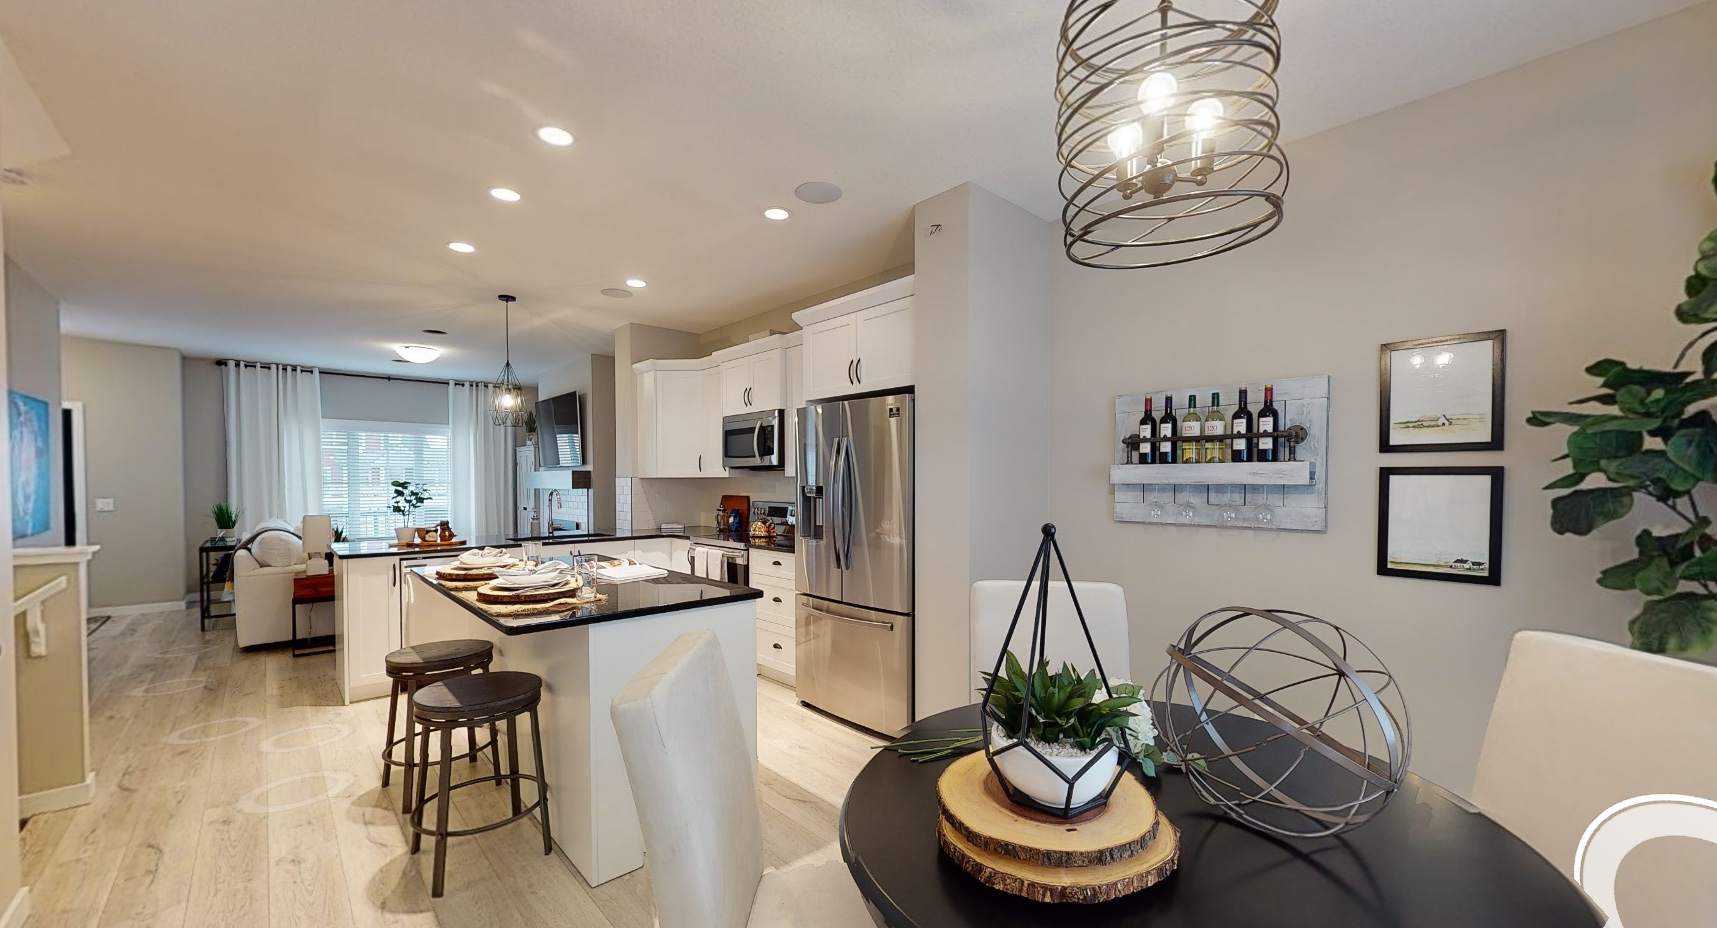 Showhome photo showing dining and kitchen area